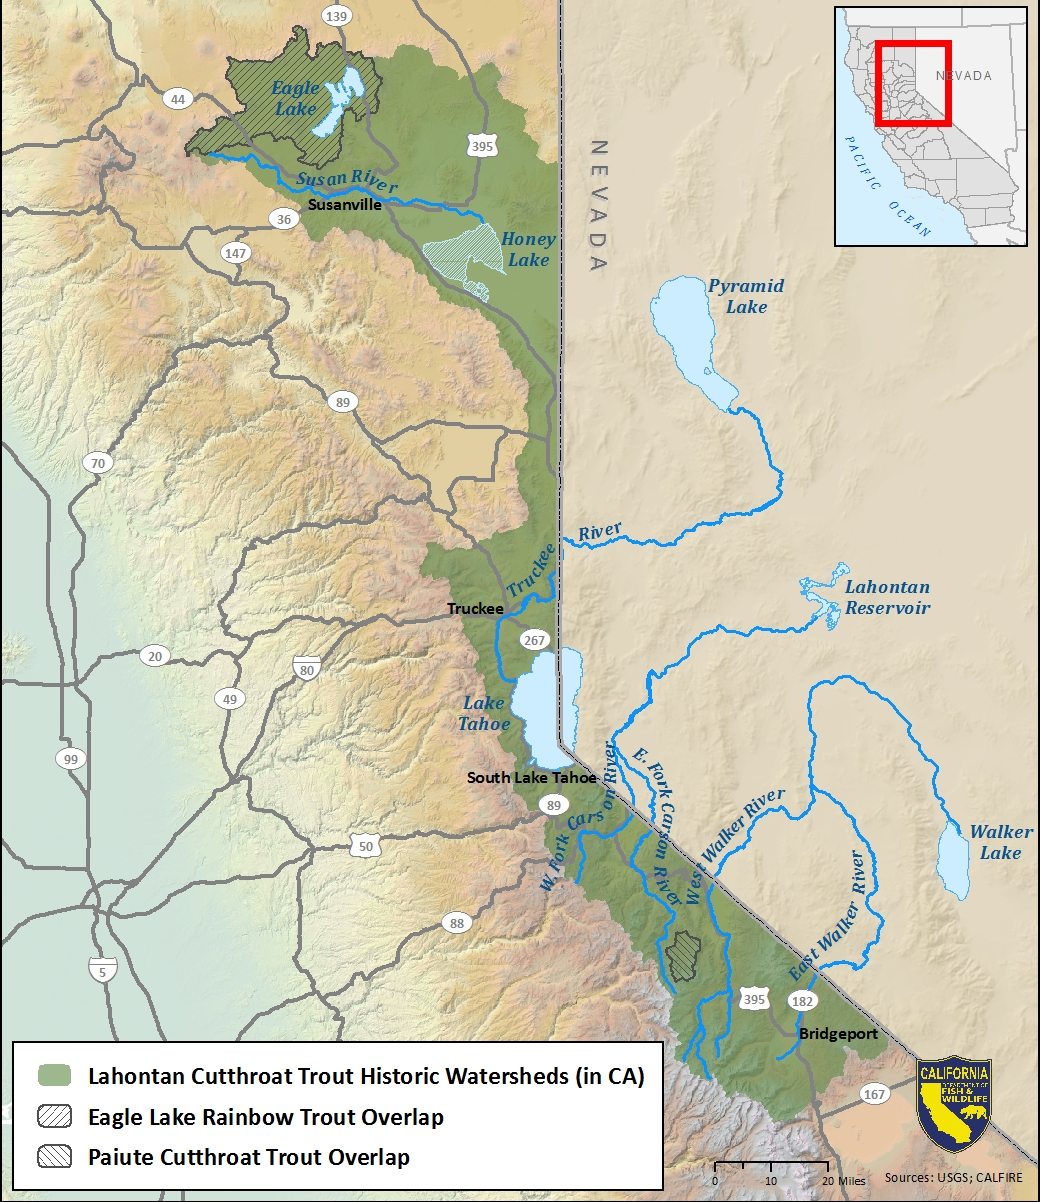 Map of Lahontan cutthroat trout historic watersheds-link opens in new window